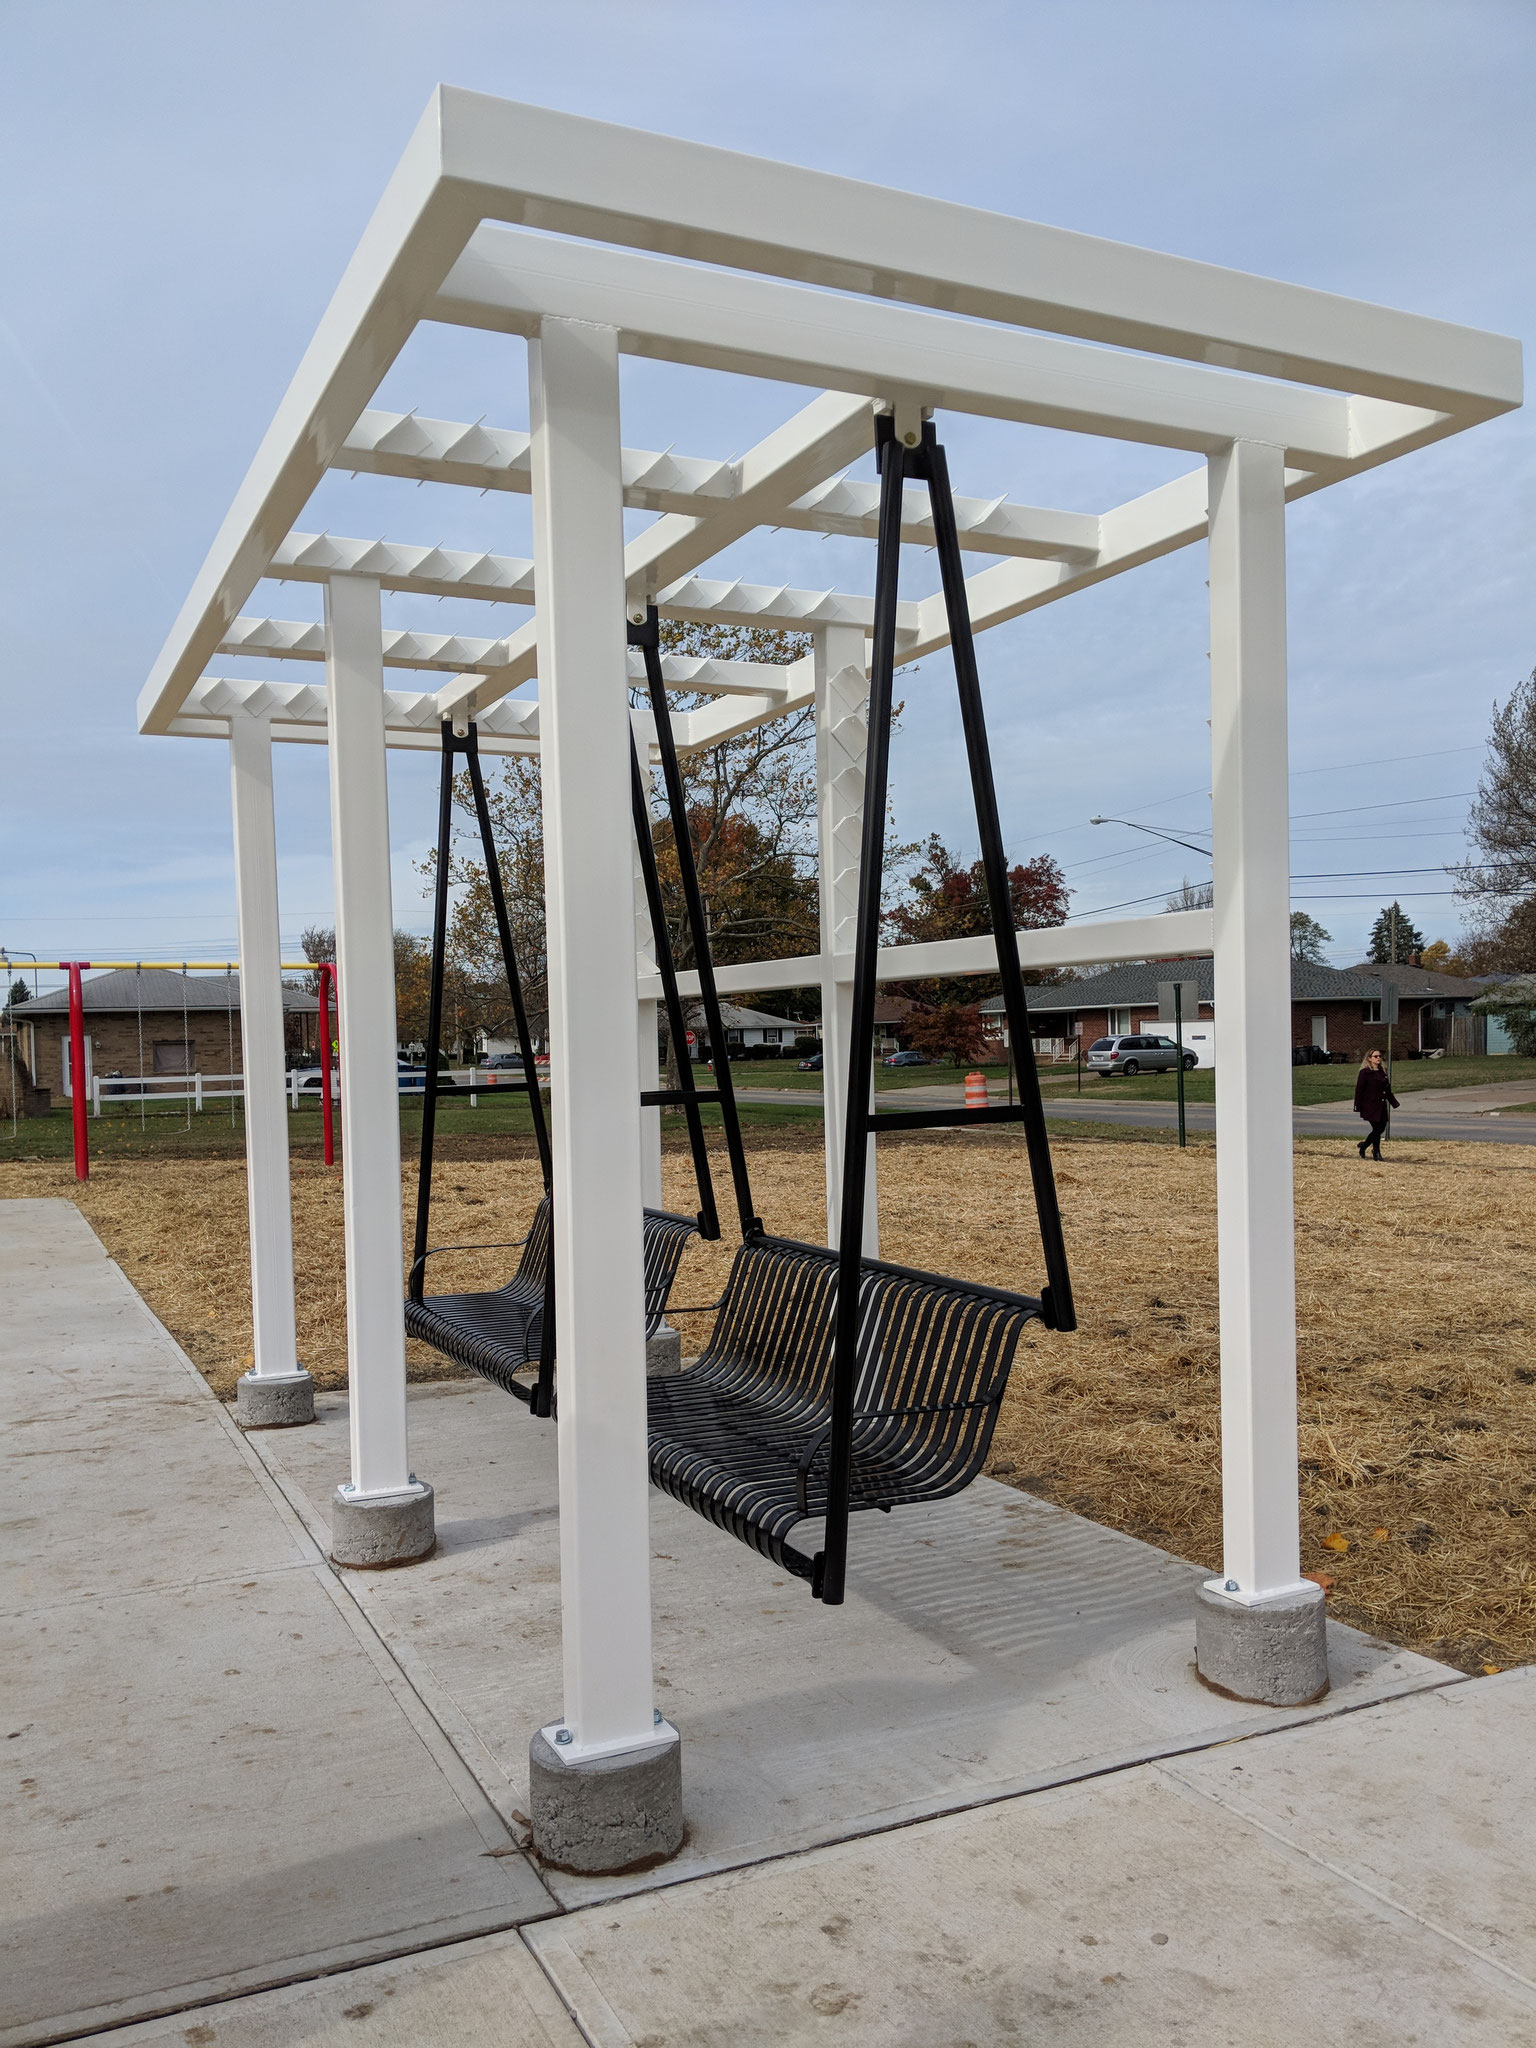 AARP donated funds for an adult swing, shade trellis and shade canopy